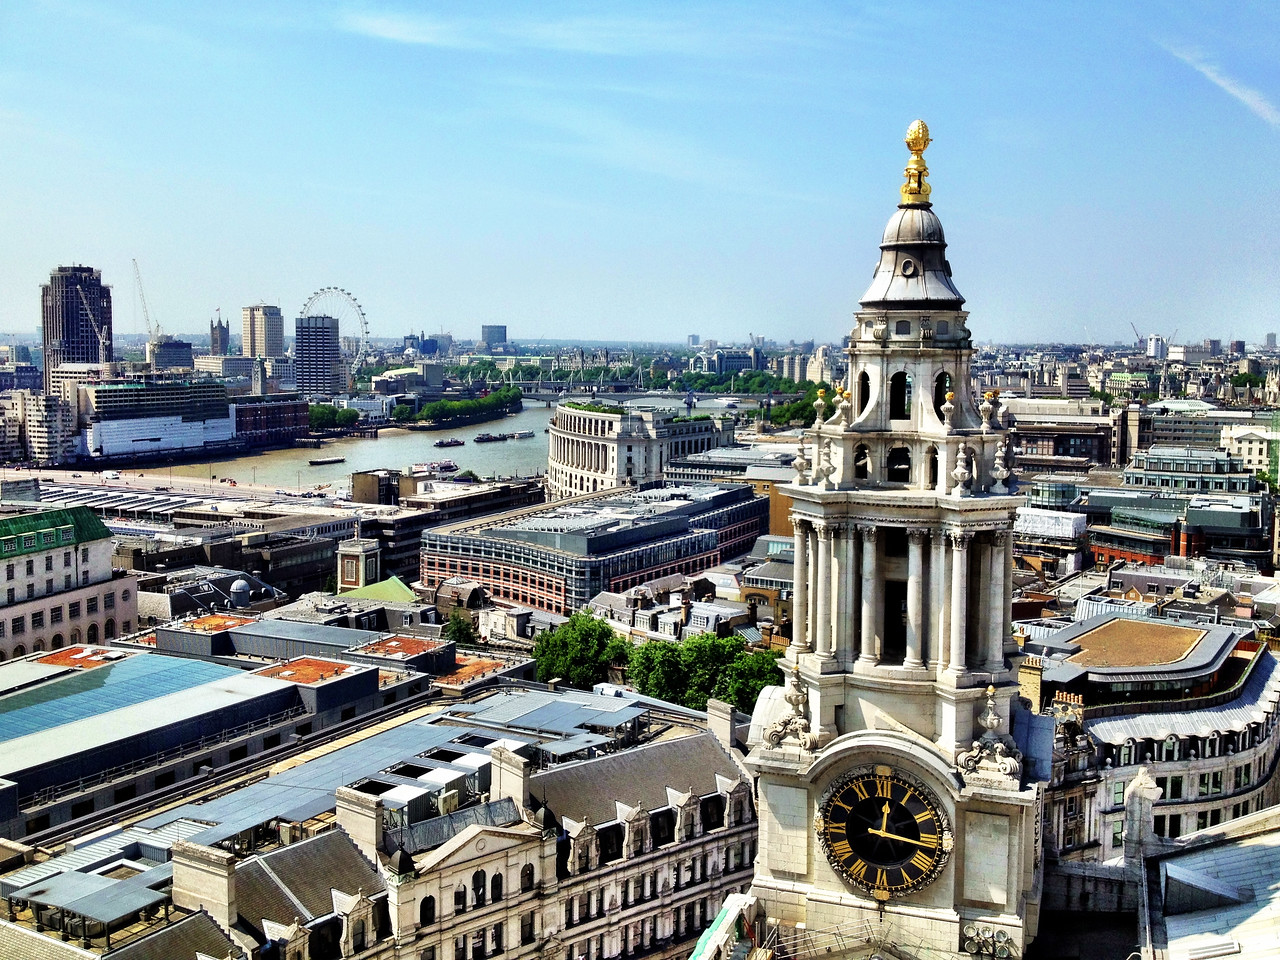 The view from the dome of St. Paul's